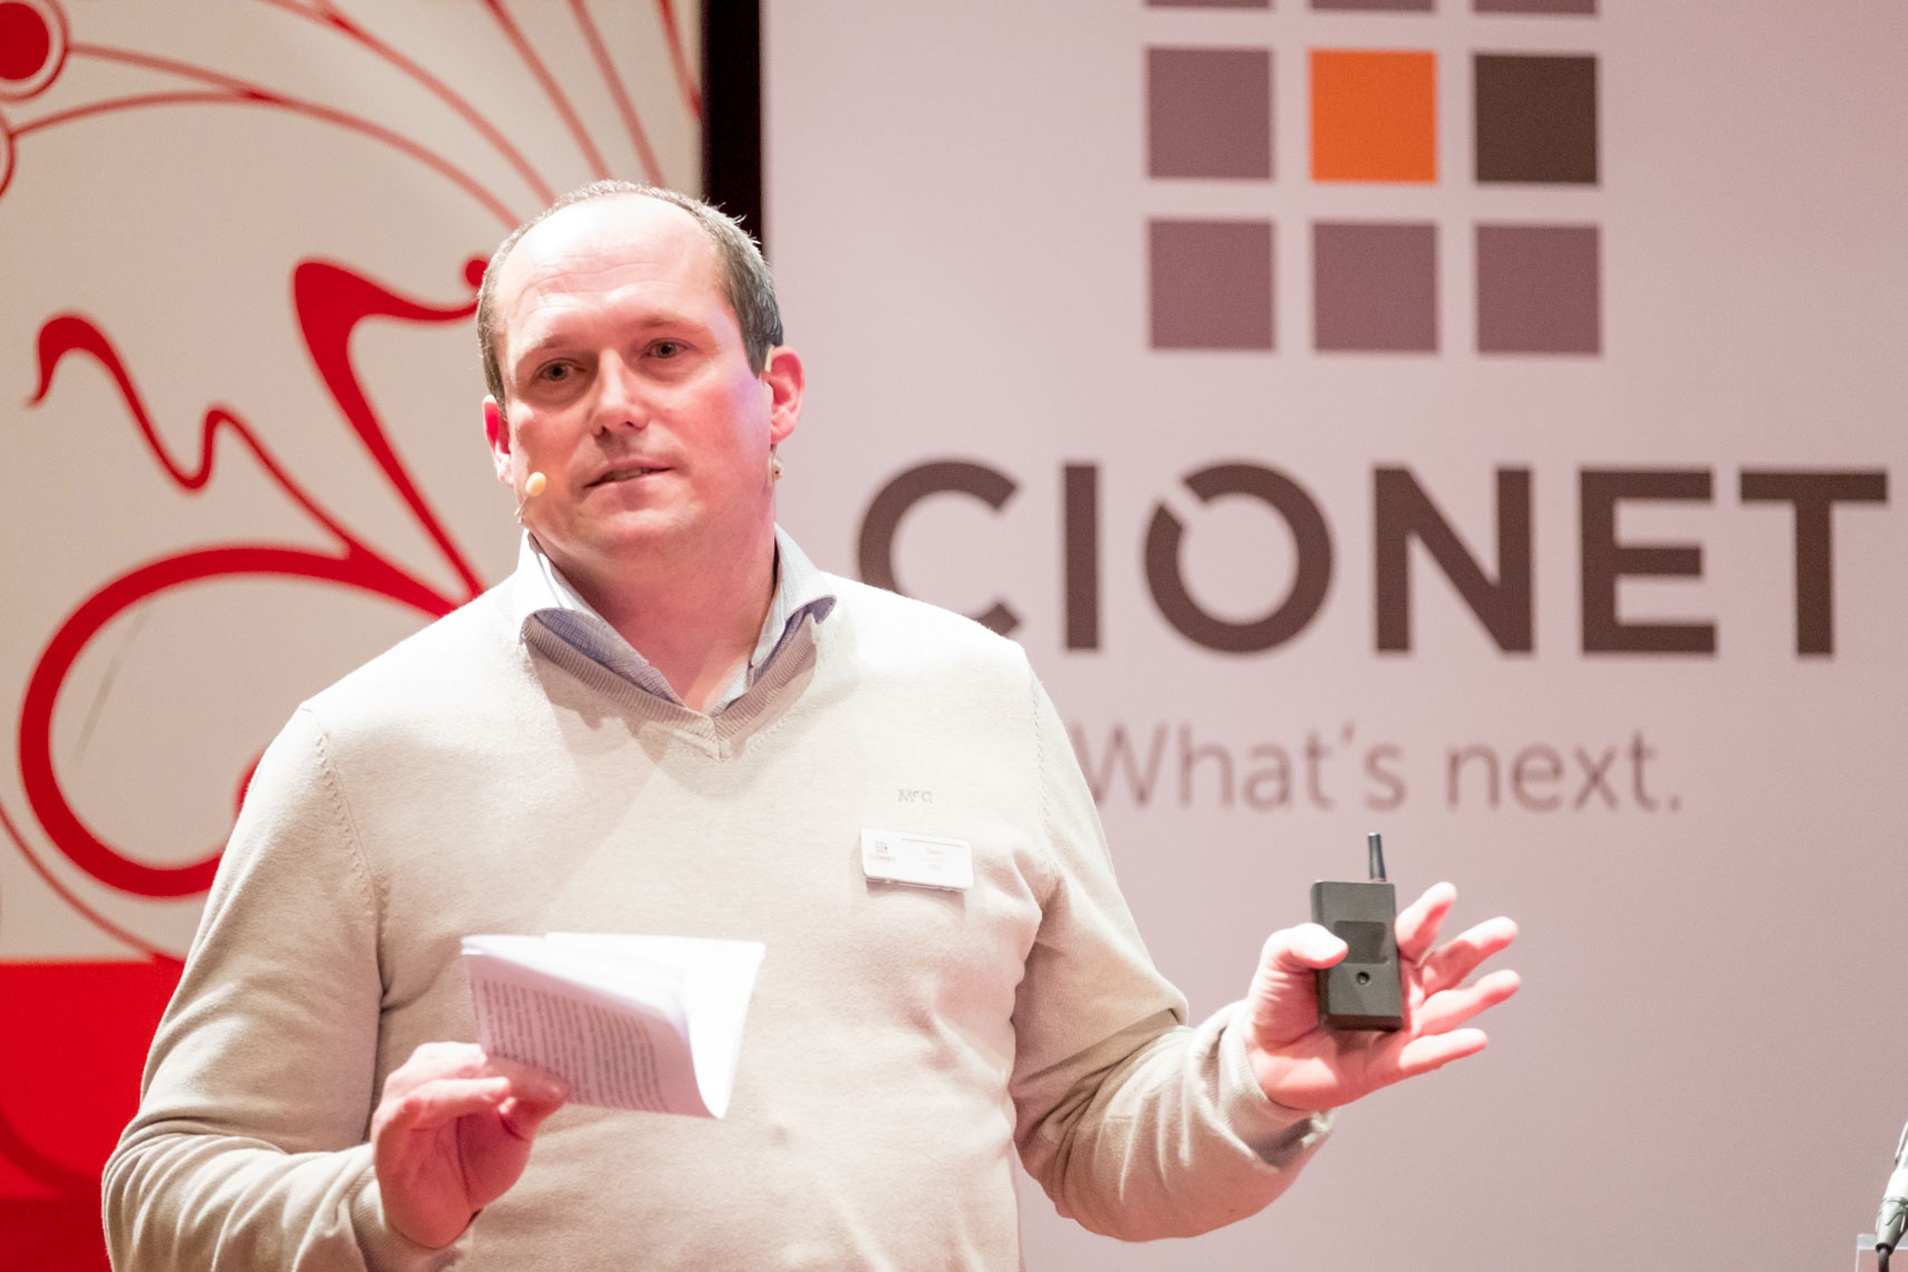 CIONET Belgium - What's Next 2018